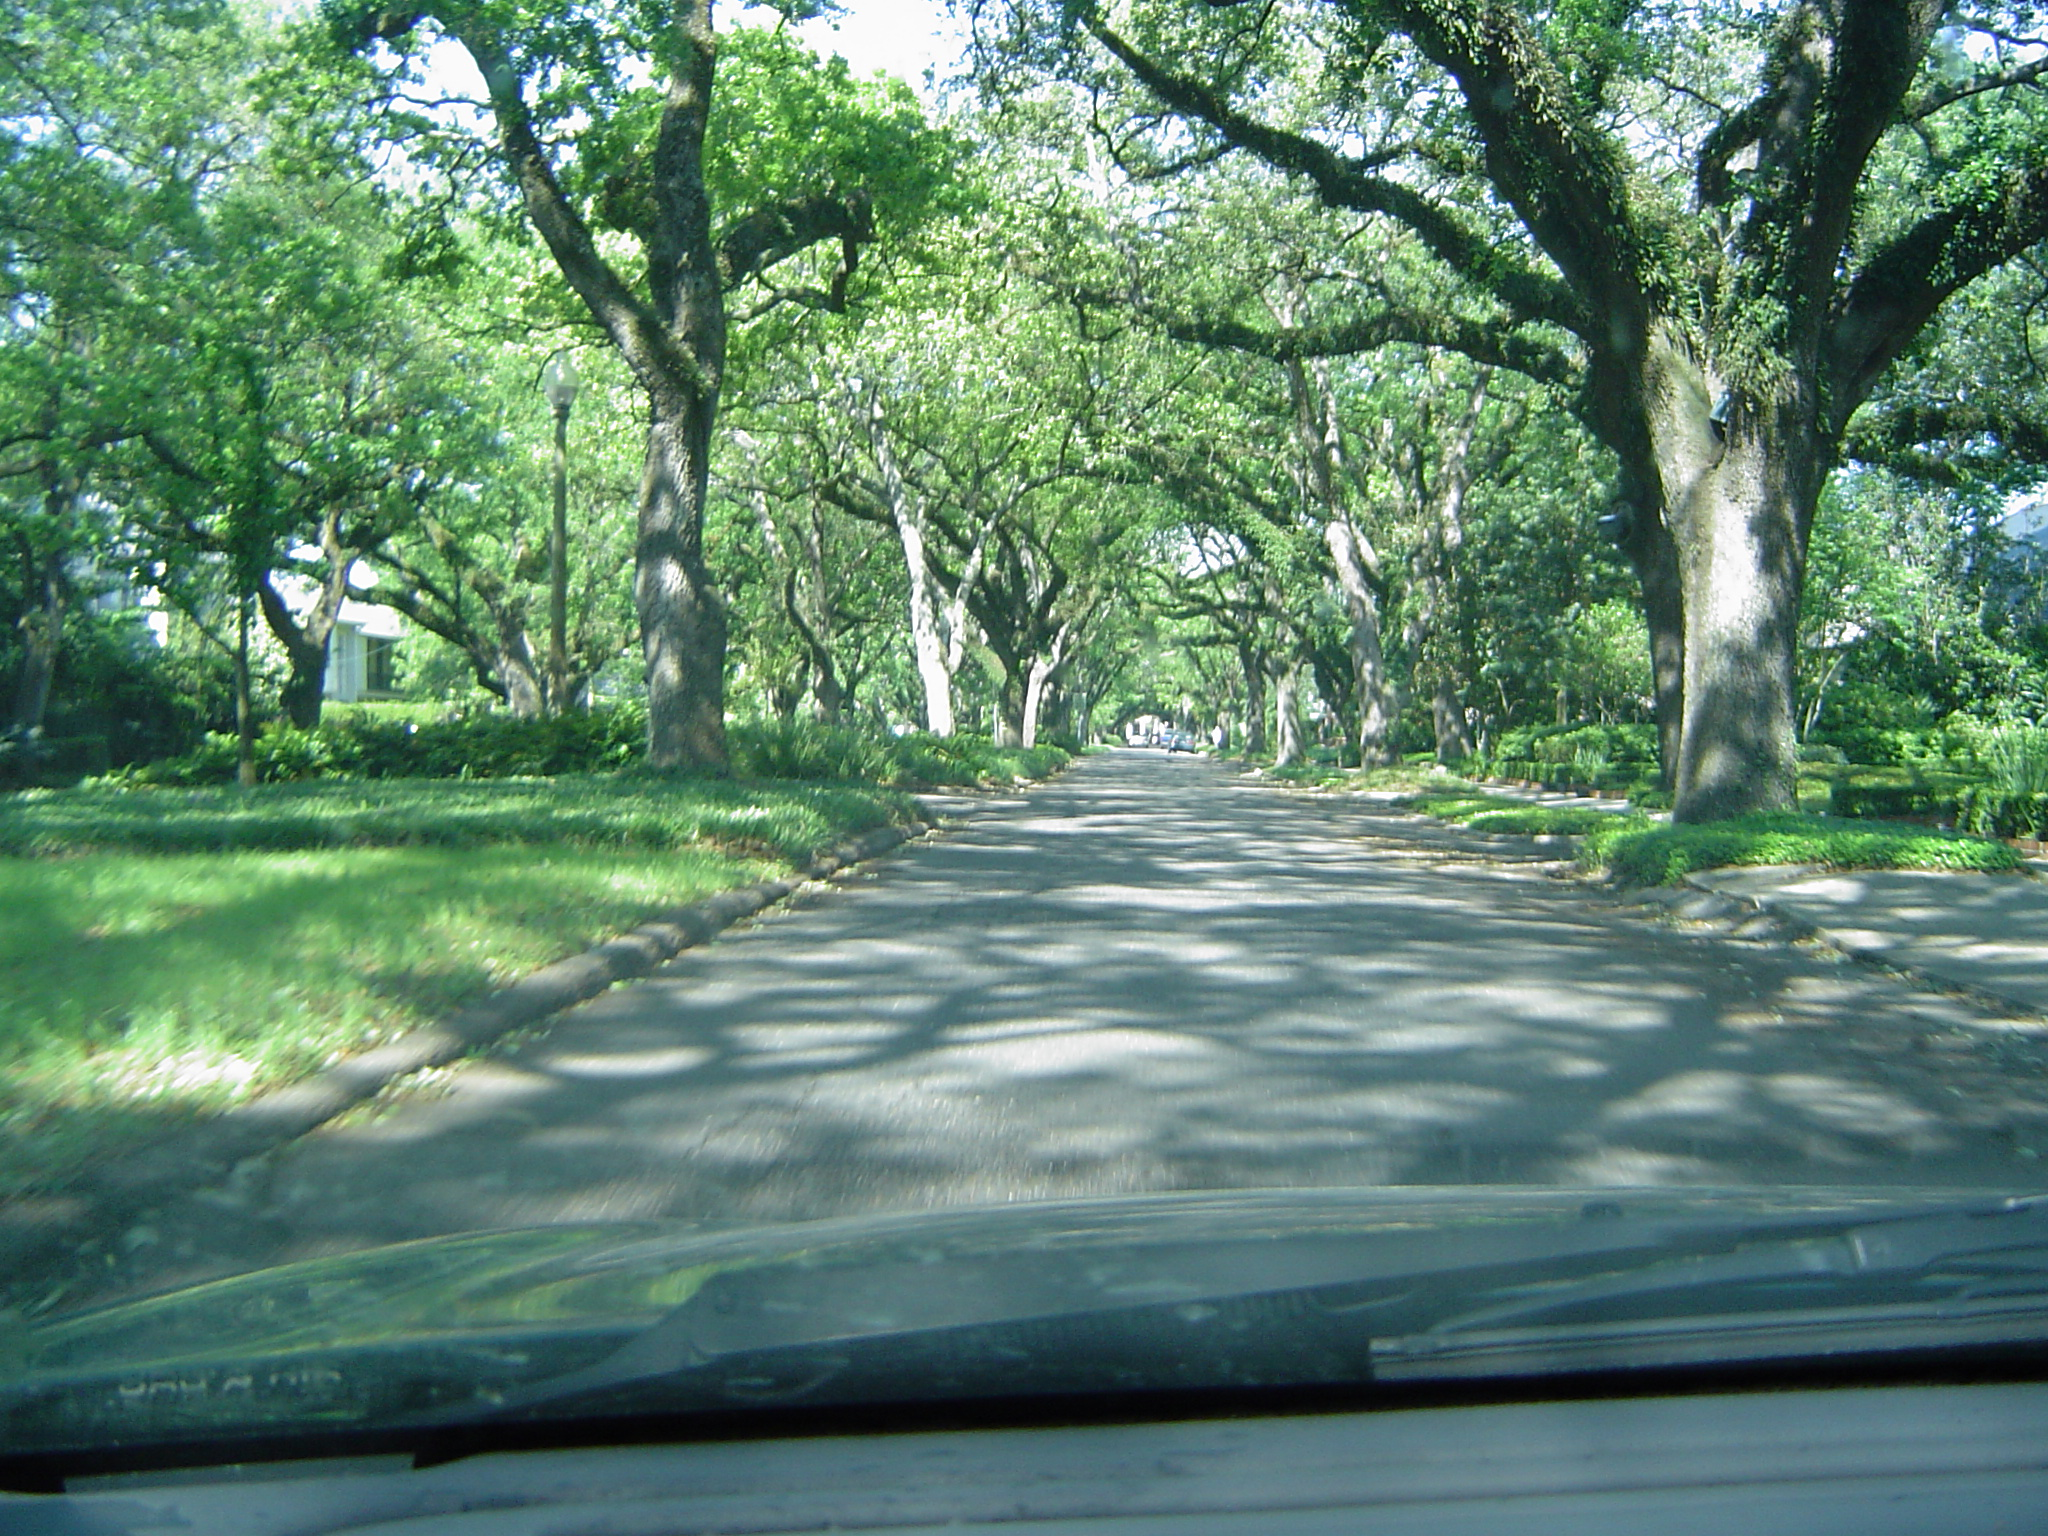 blurred suburuban tree lined avenue with dappled sun